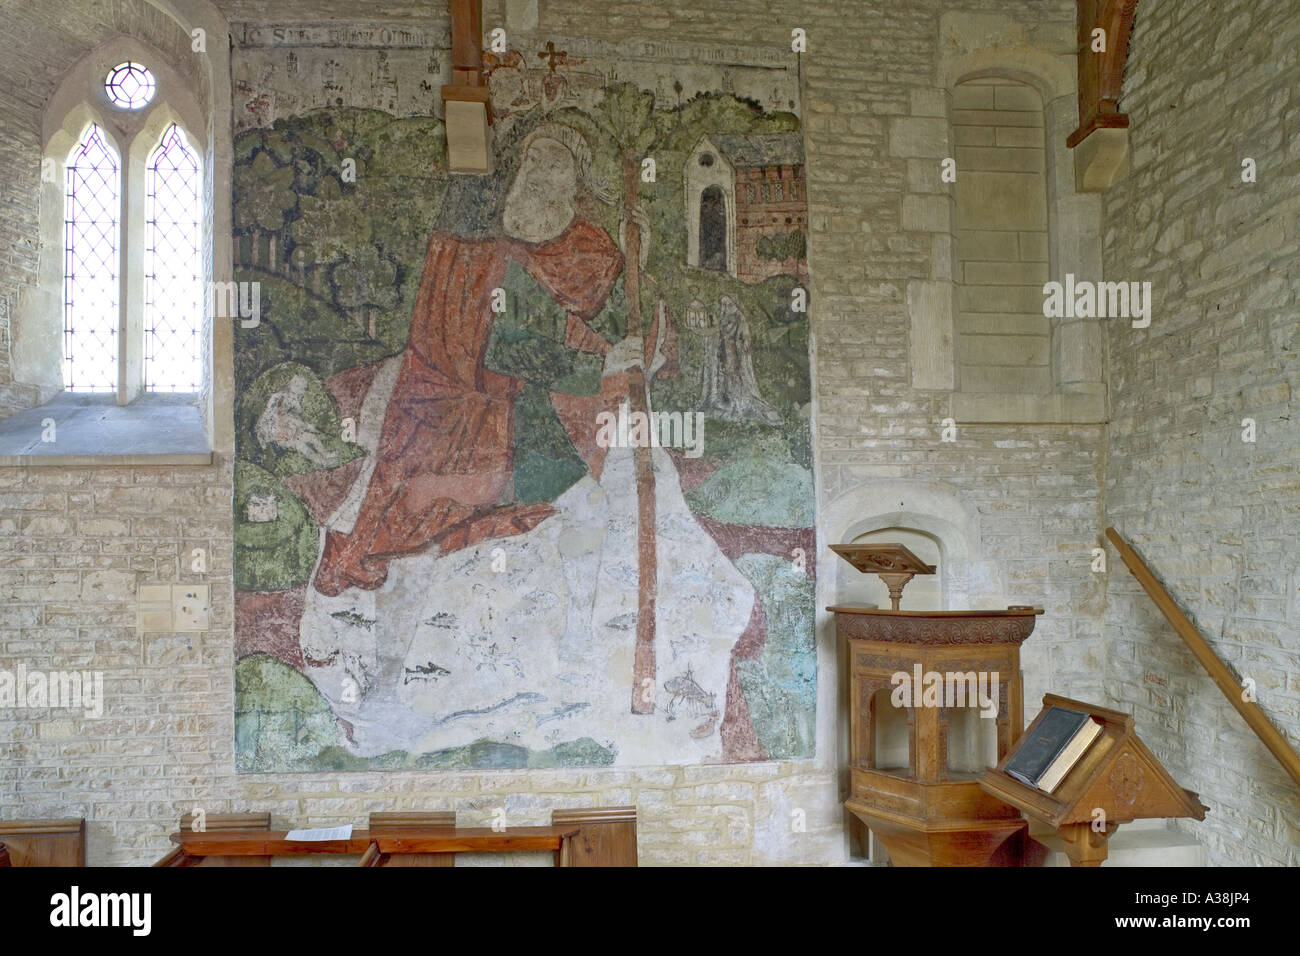 14th century wall painting of St Christopher in the church of St Mary Magdelene at Baunton in Gloucestershire - Stock Image